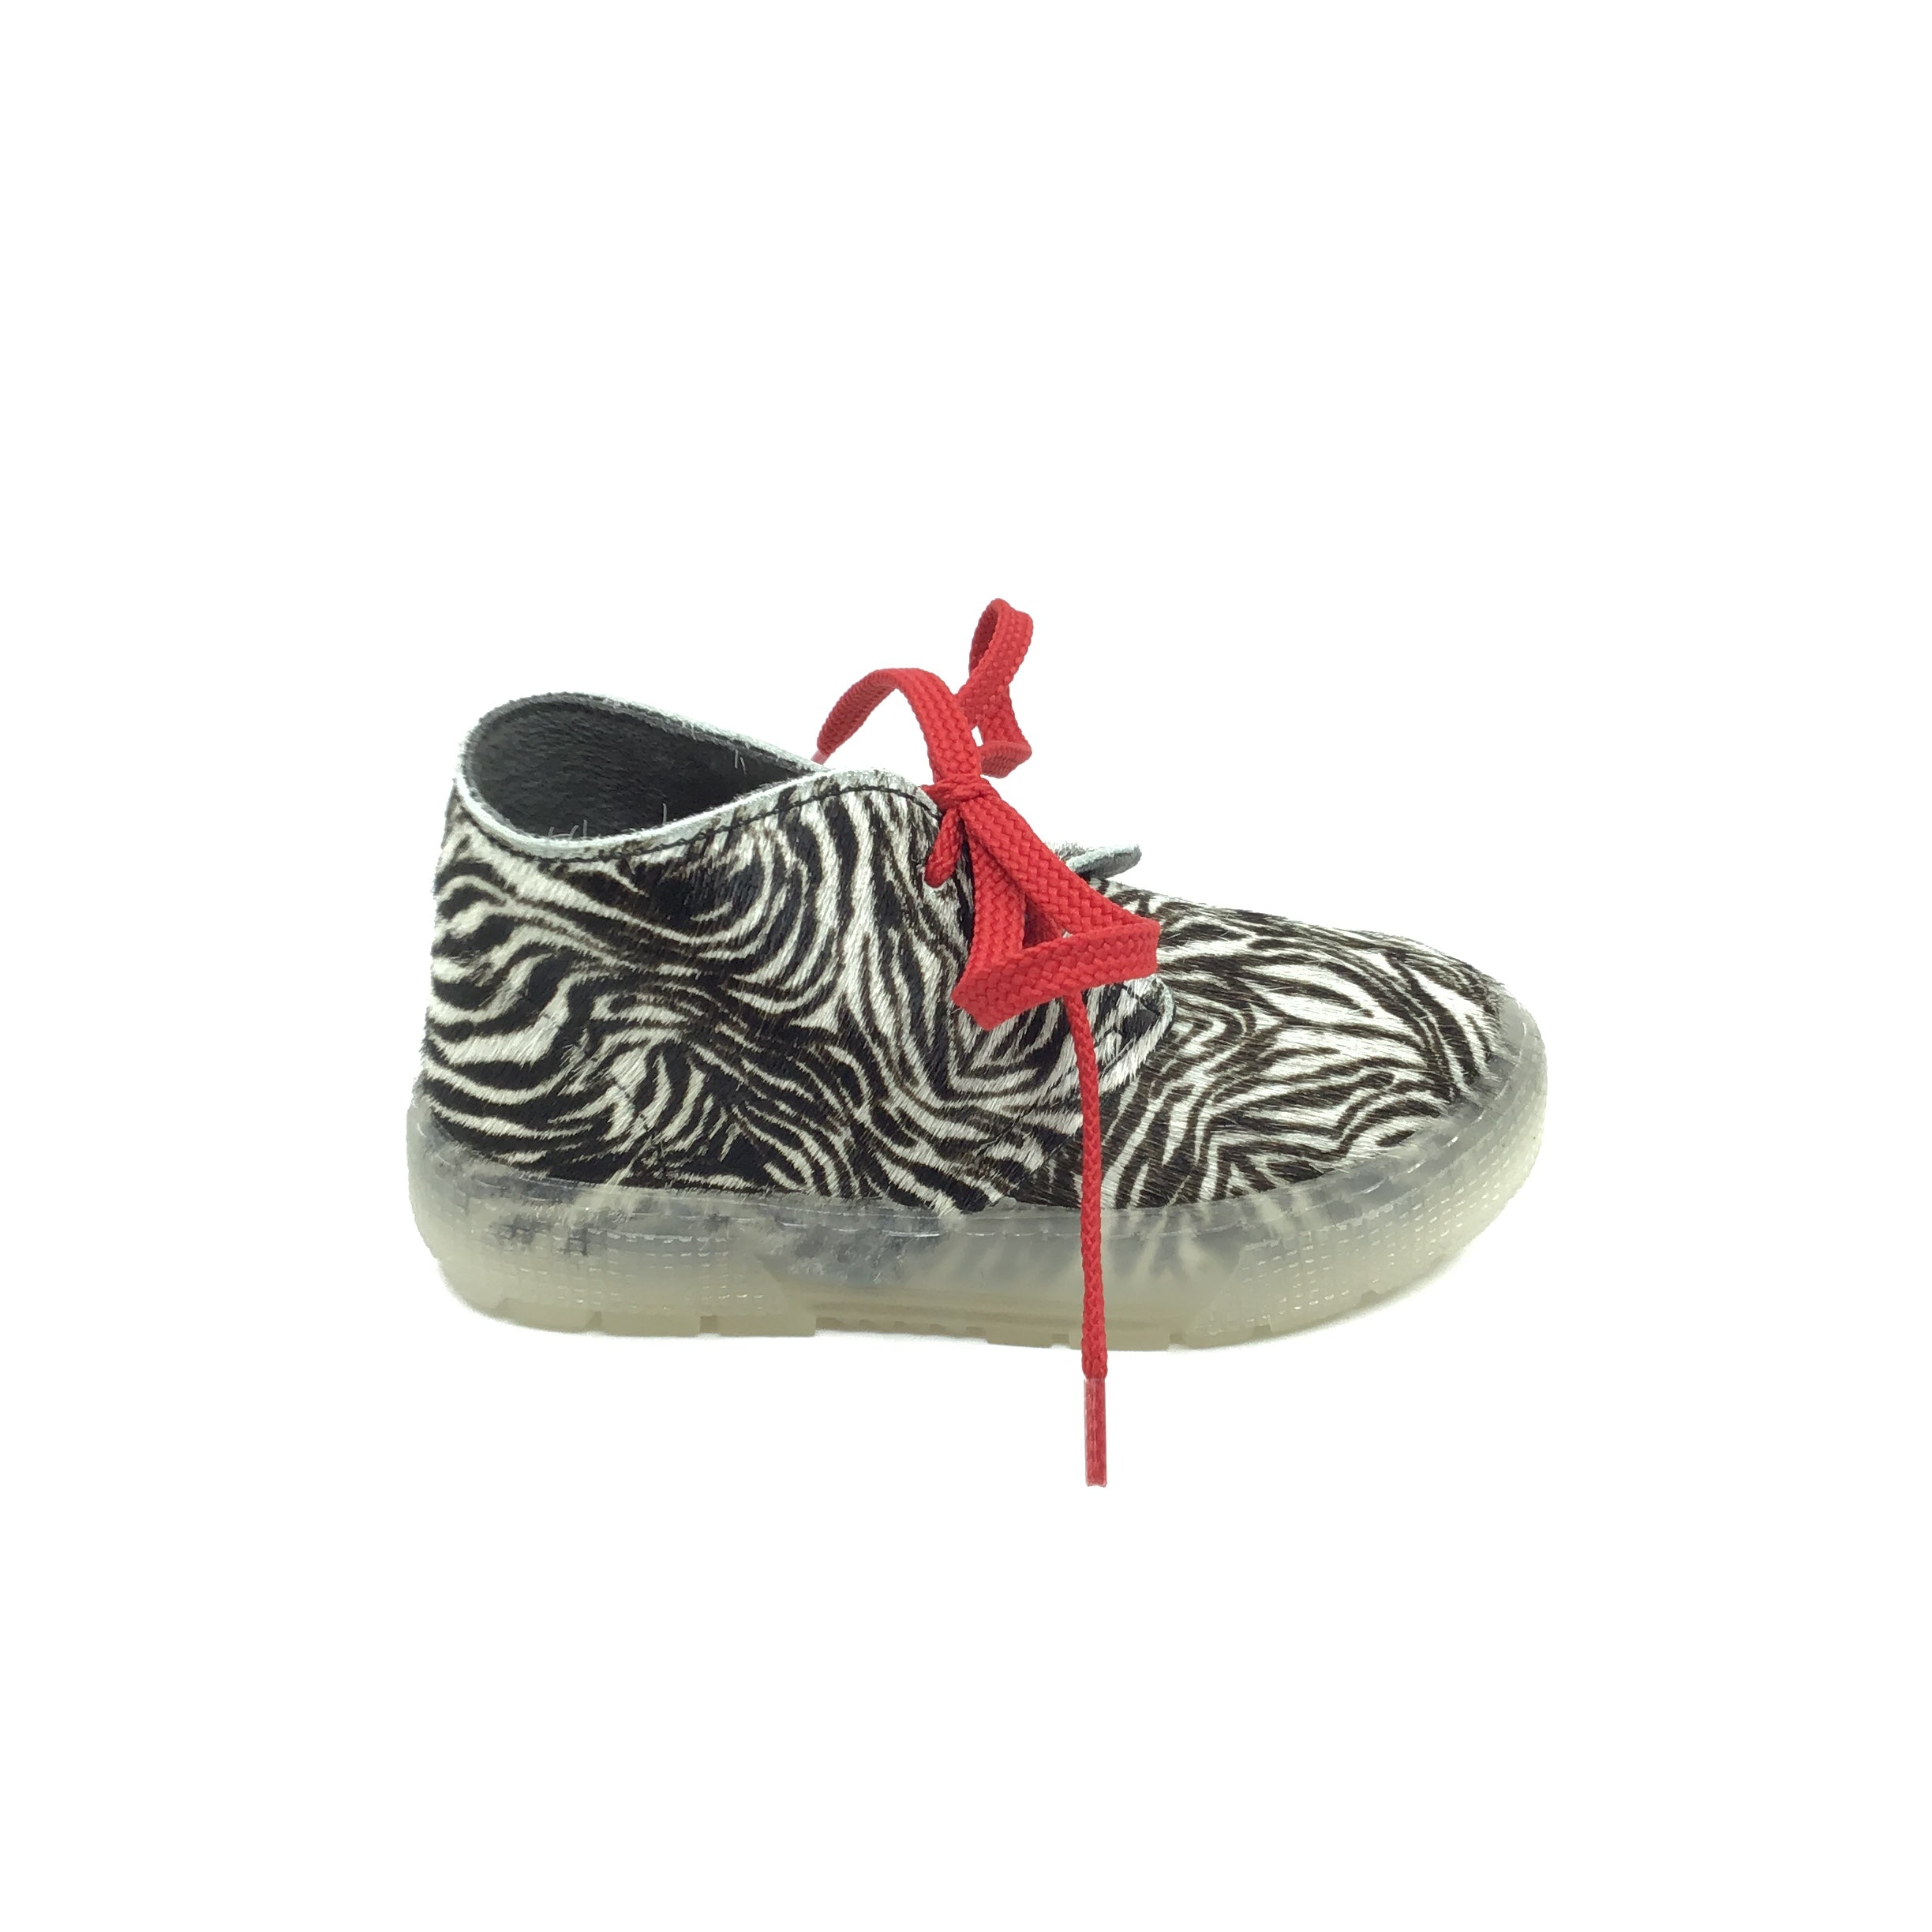 Zebra Sneaker with Red Laces